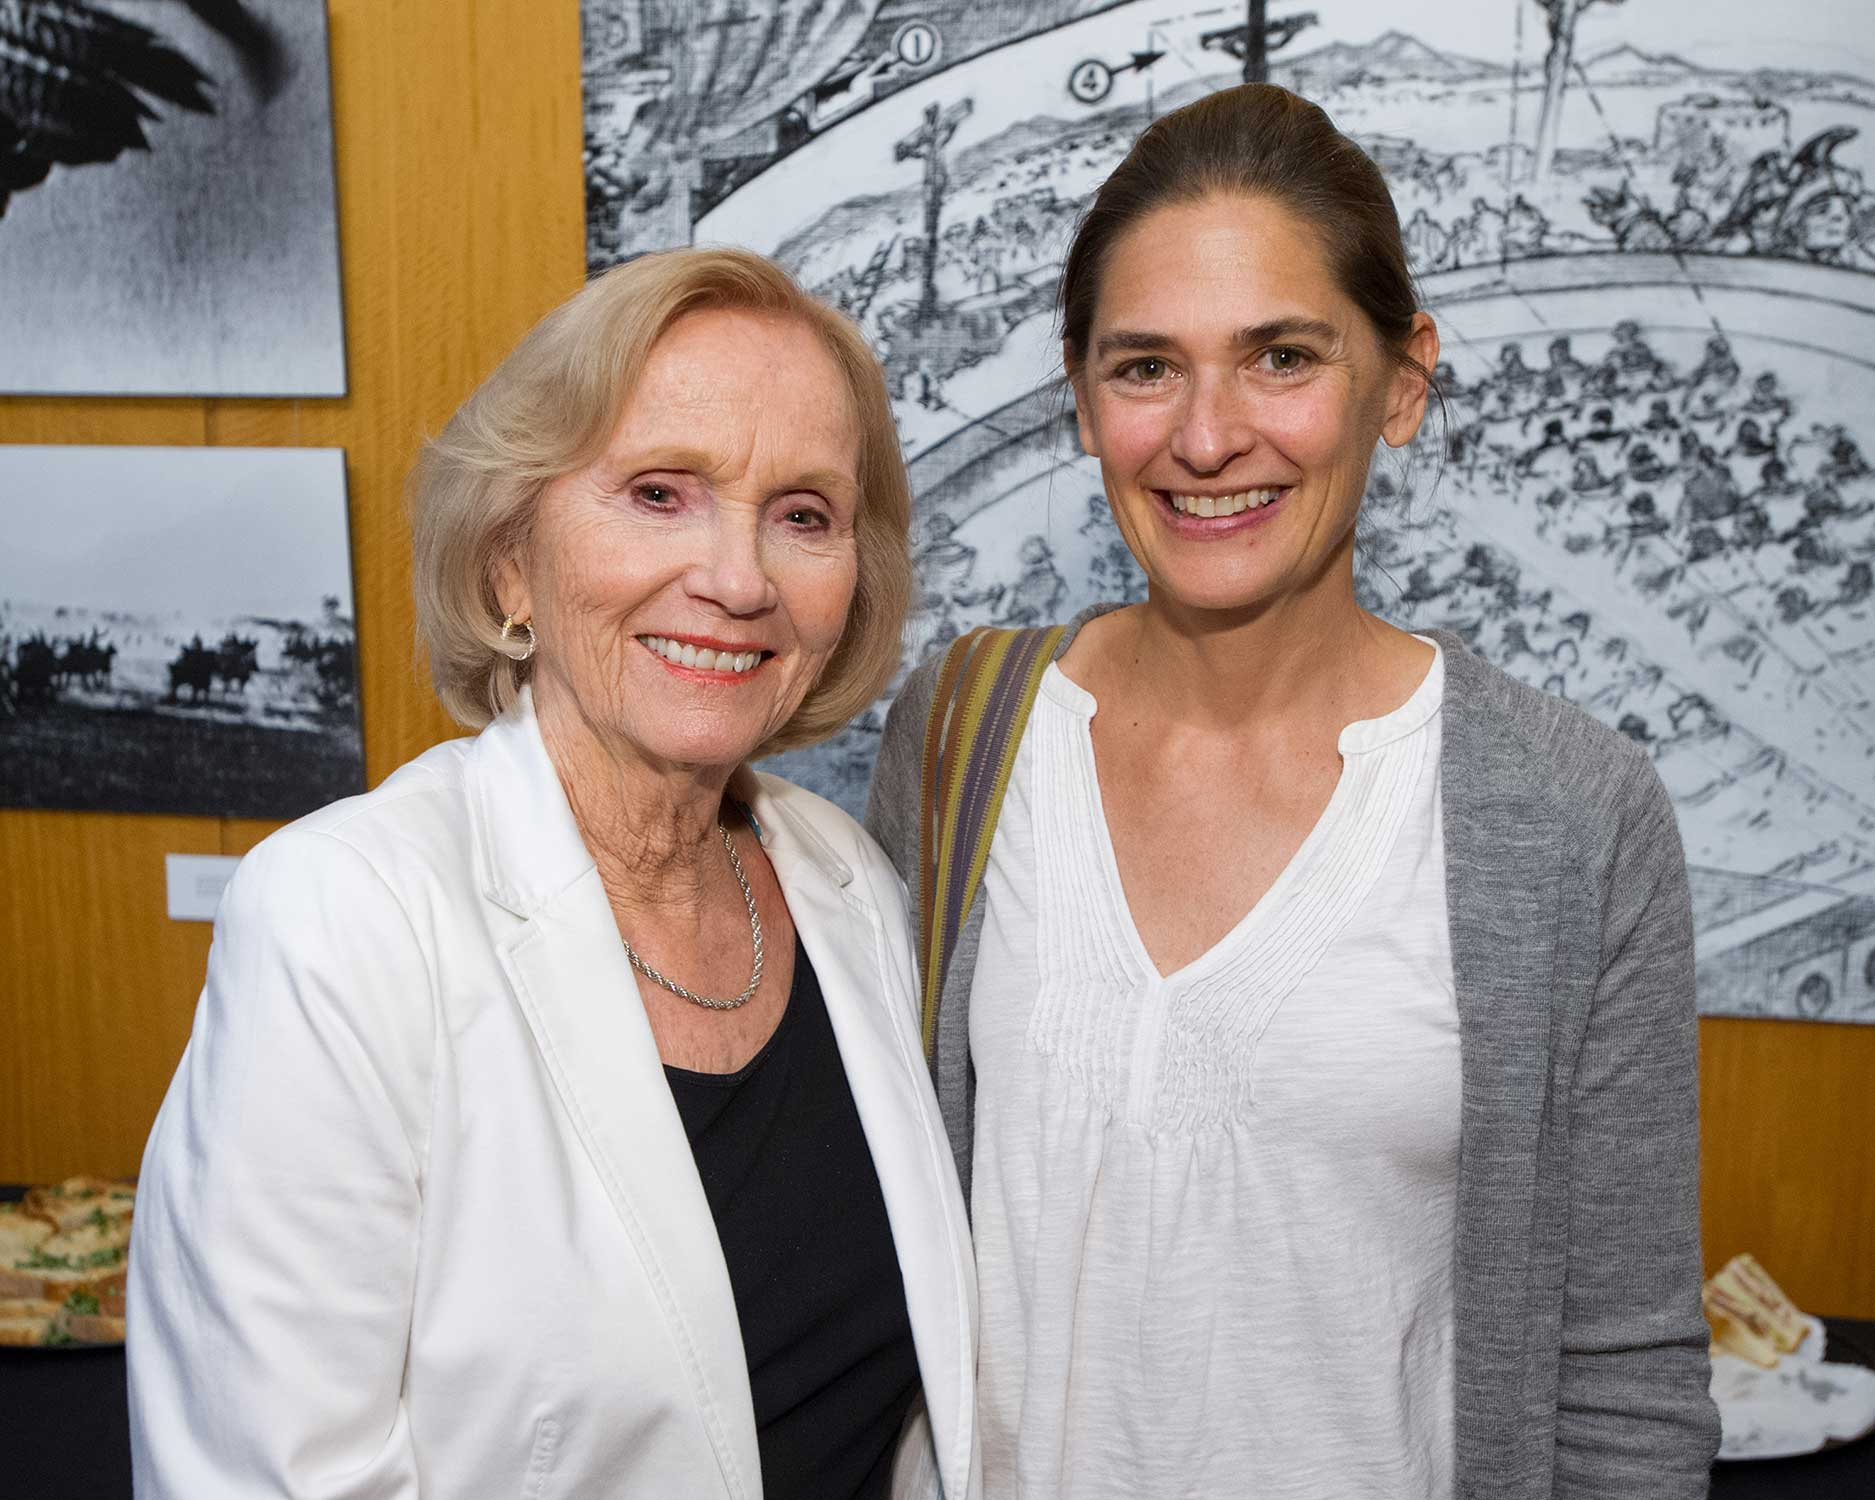 Oscar Winning Actress Eva Marie Saint and Jennifer Bass daughter of artist Saul Bass